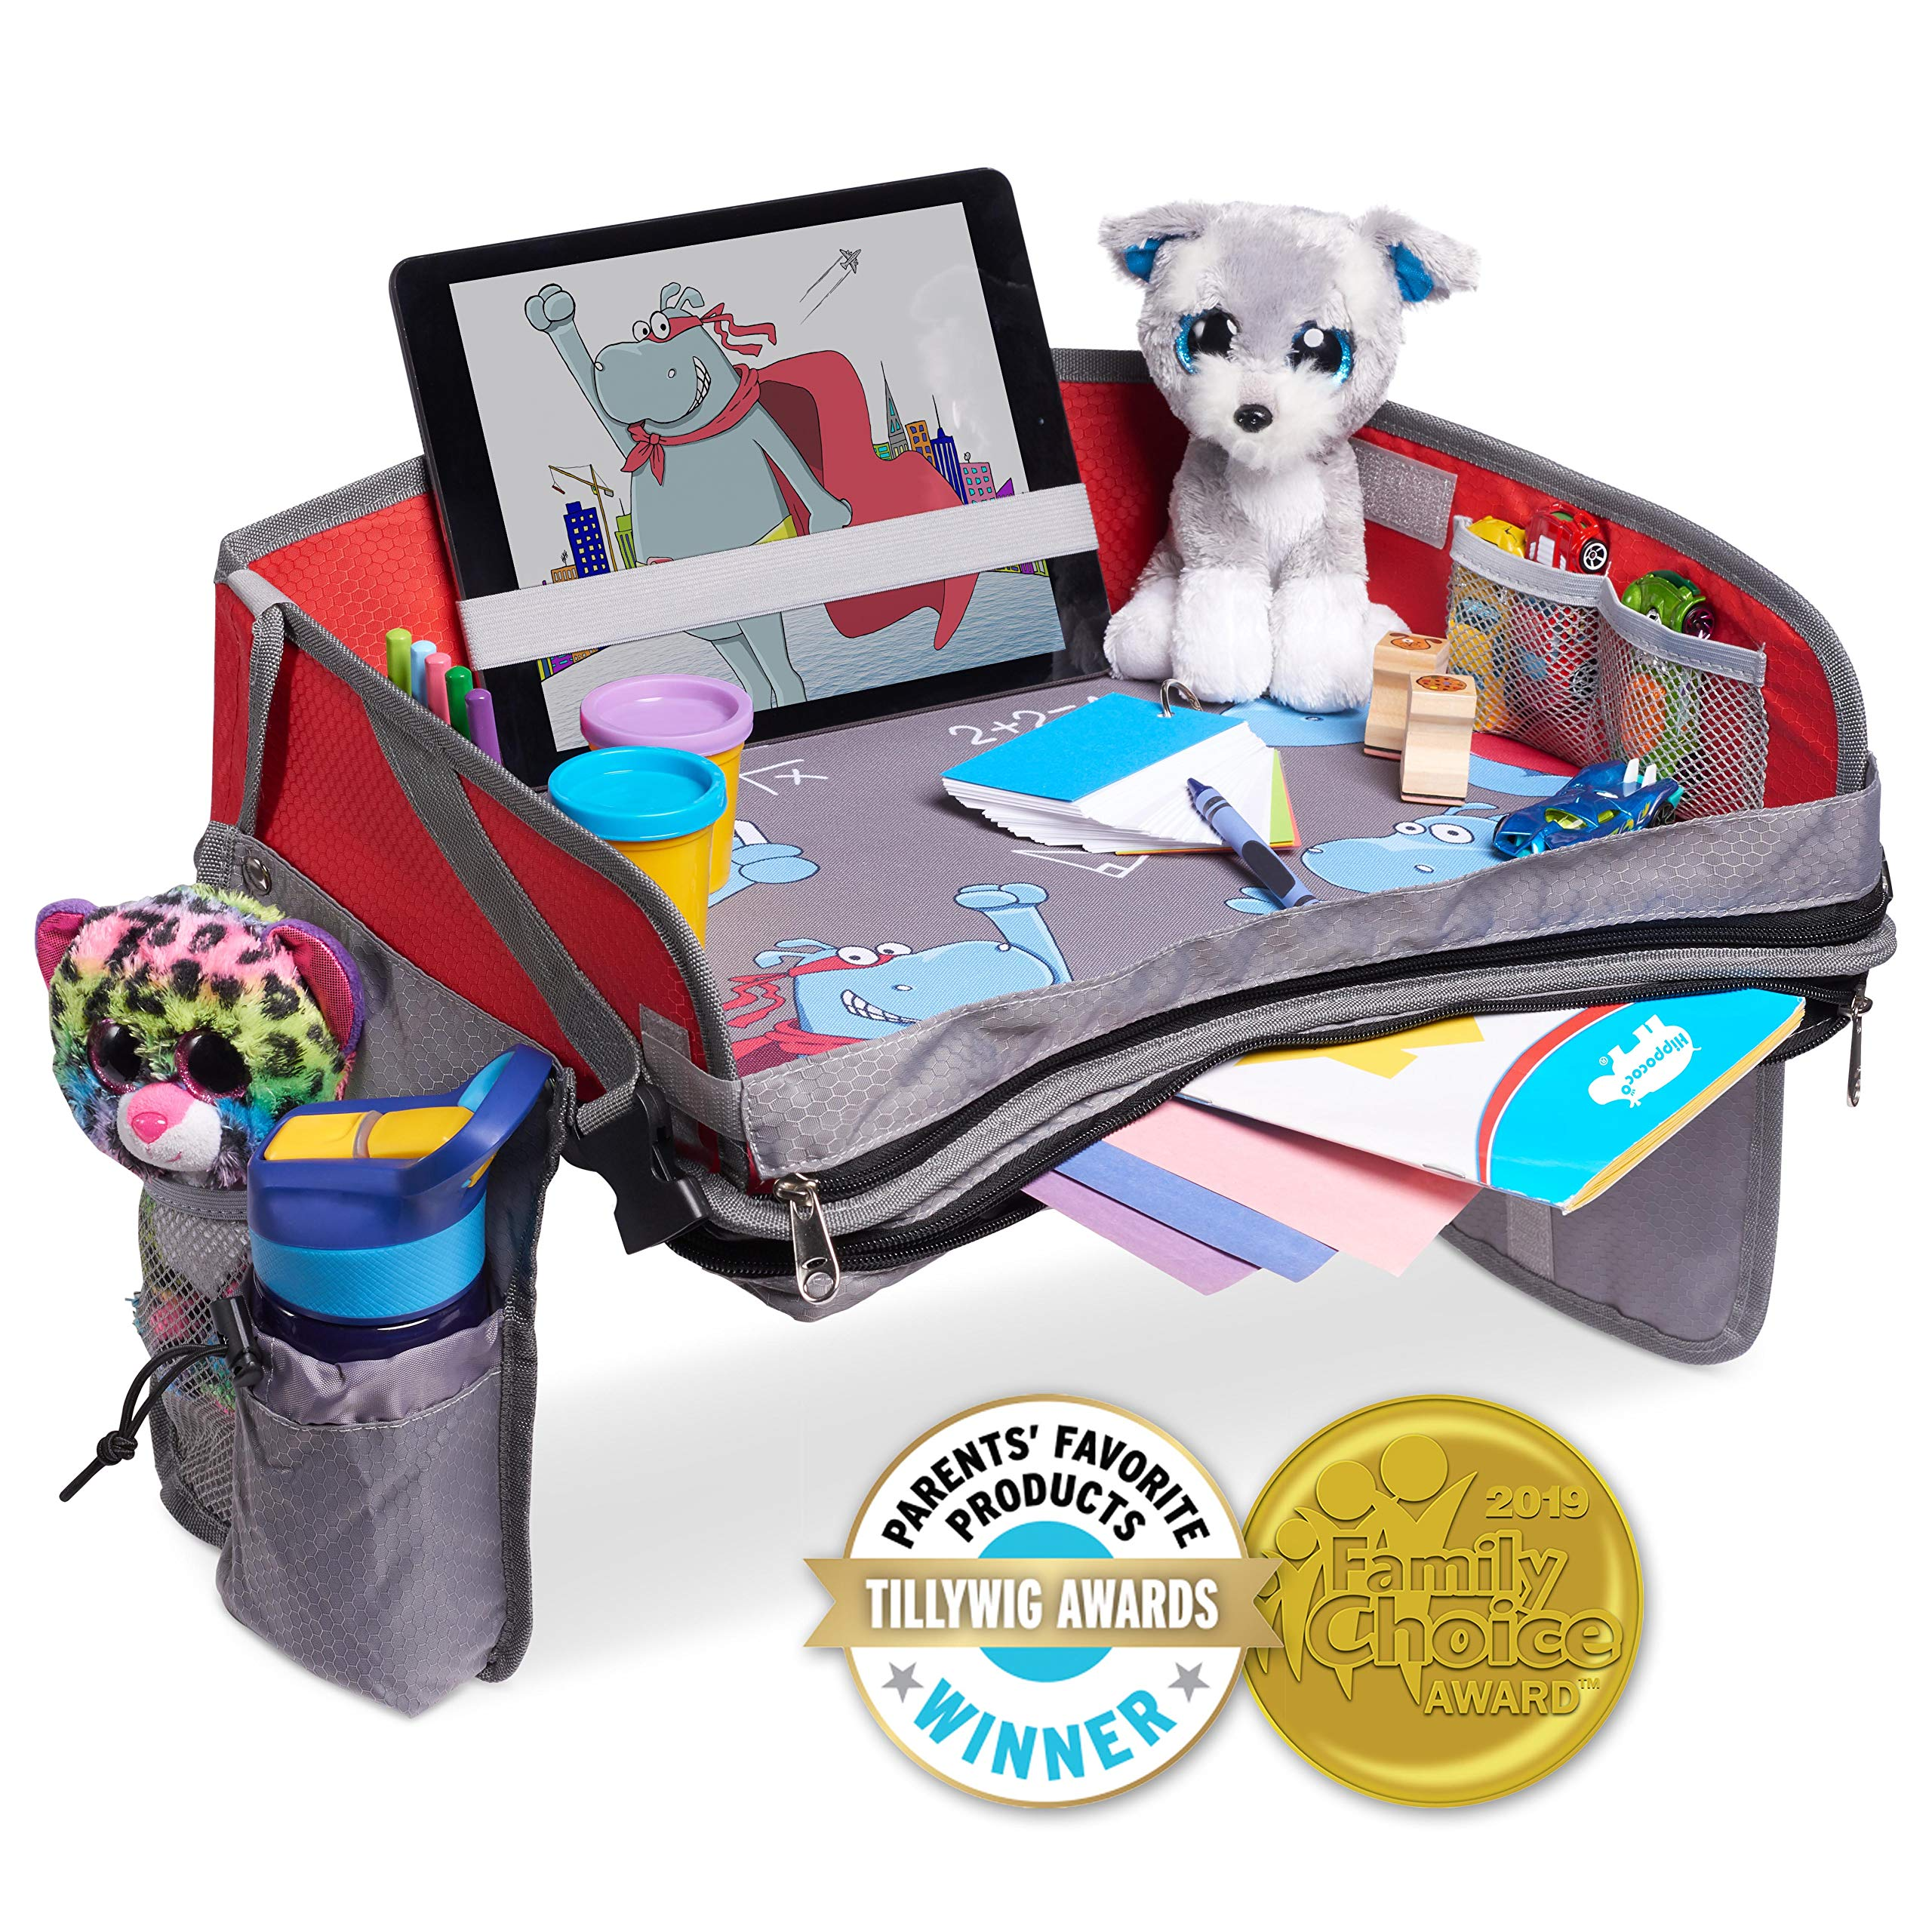 Hippococo Kids Travel Tray: Premium Portable Activity Organizer, Non-Flimsy, Padded Base, Large Storage Pocket, Sturdy Walls, Waterproof, Tablet Holder, Universal Fit - Car Seats, Strollers & Airplane by Hippococo